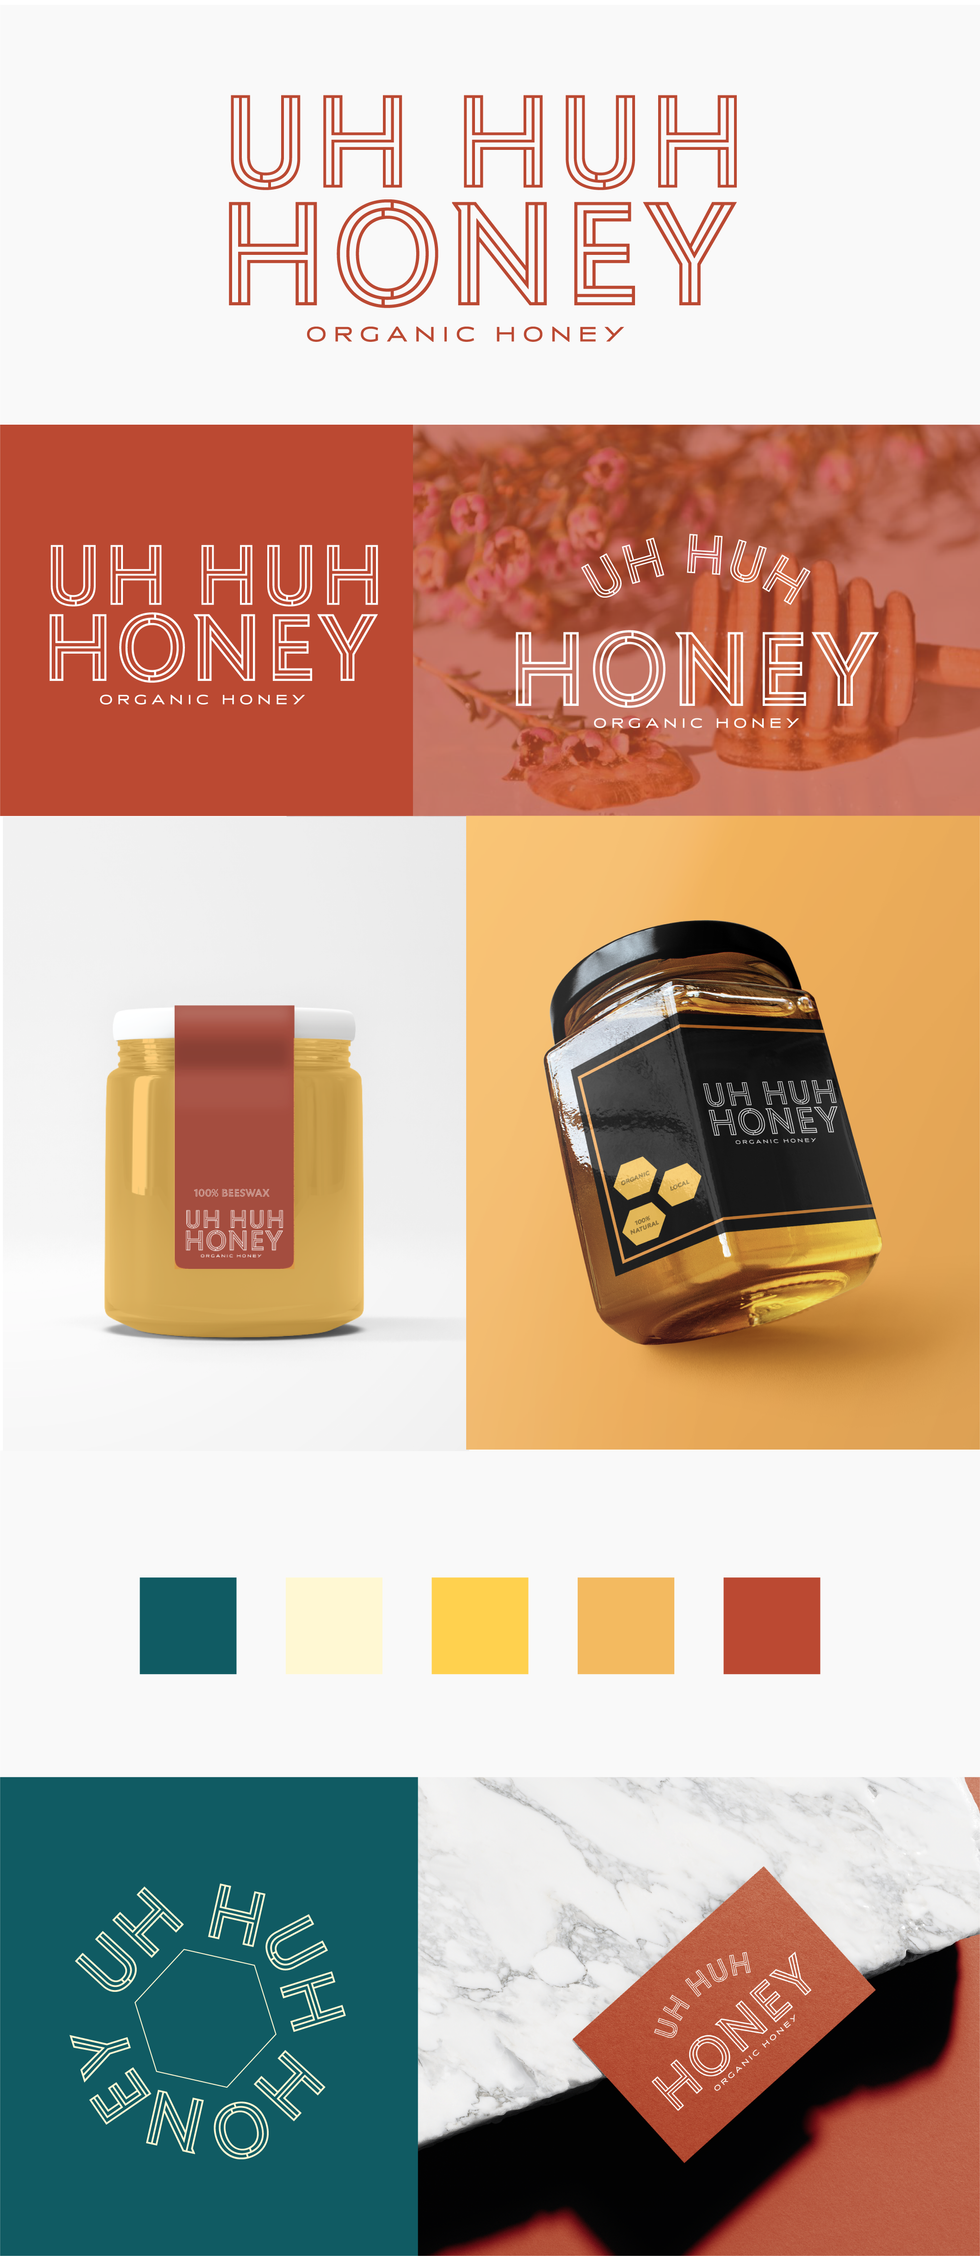 UH HUH HONEY Logo & Packaging Design